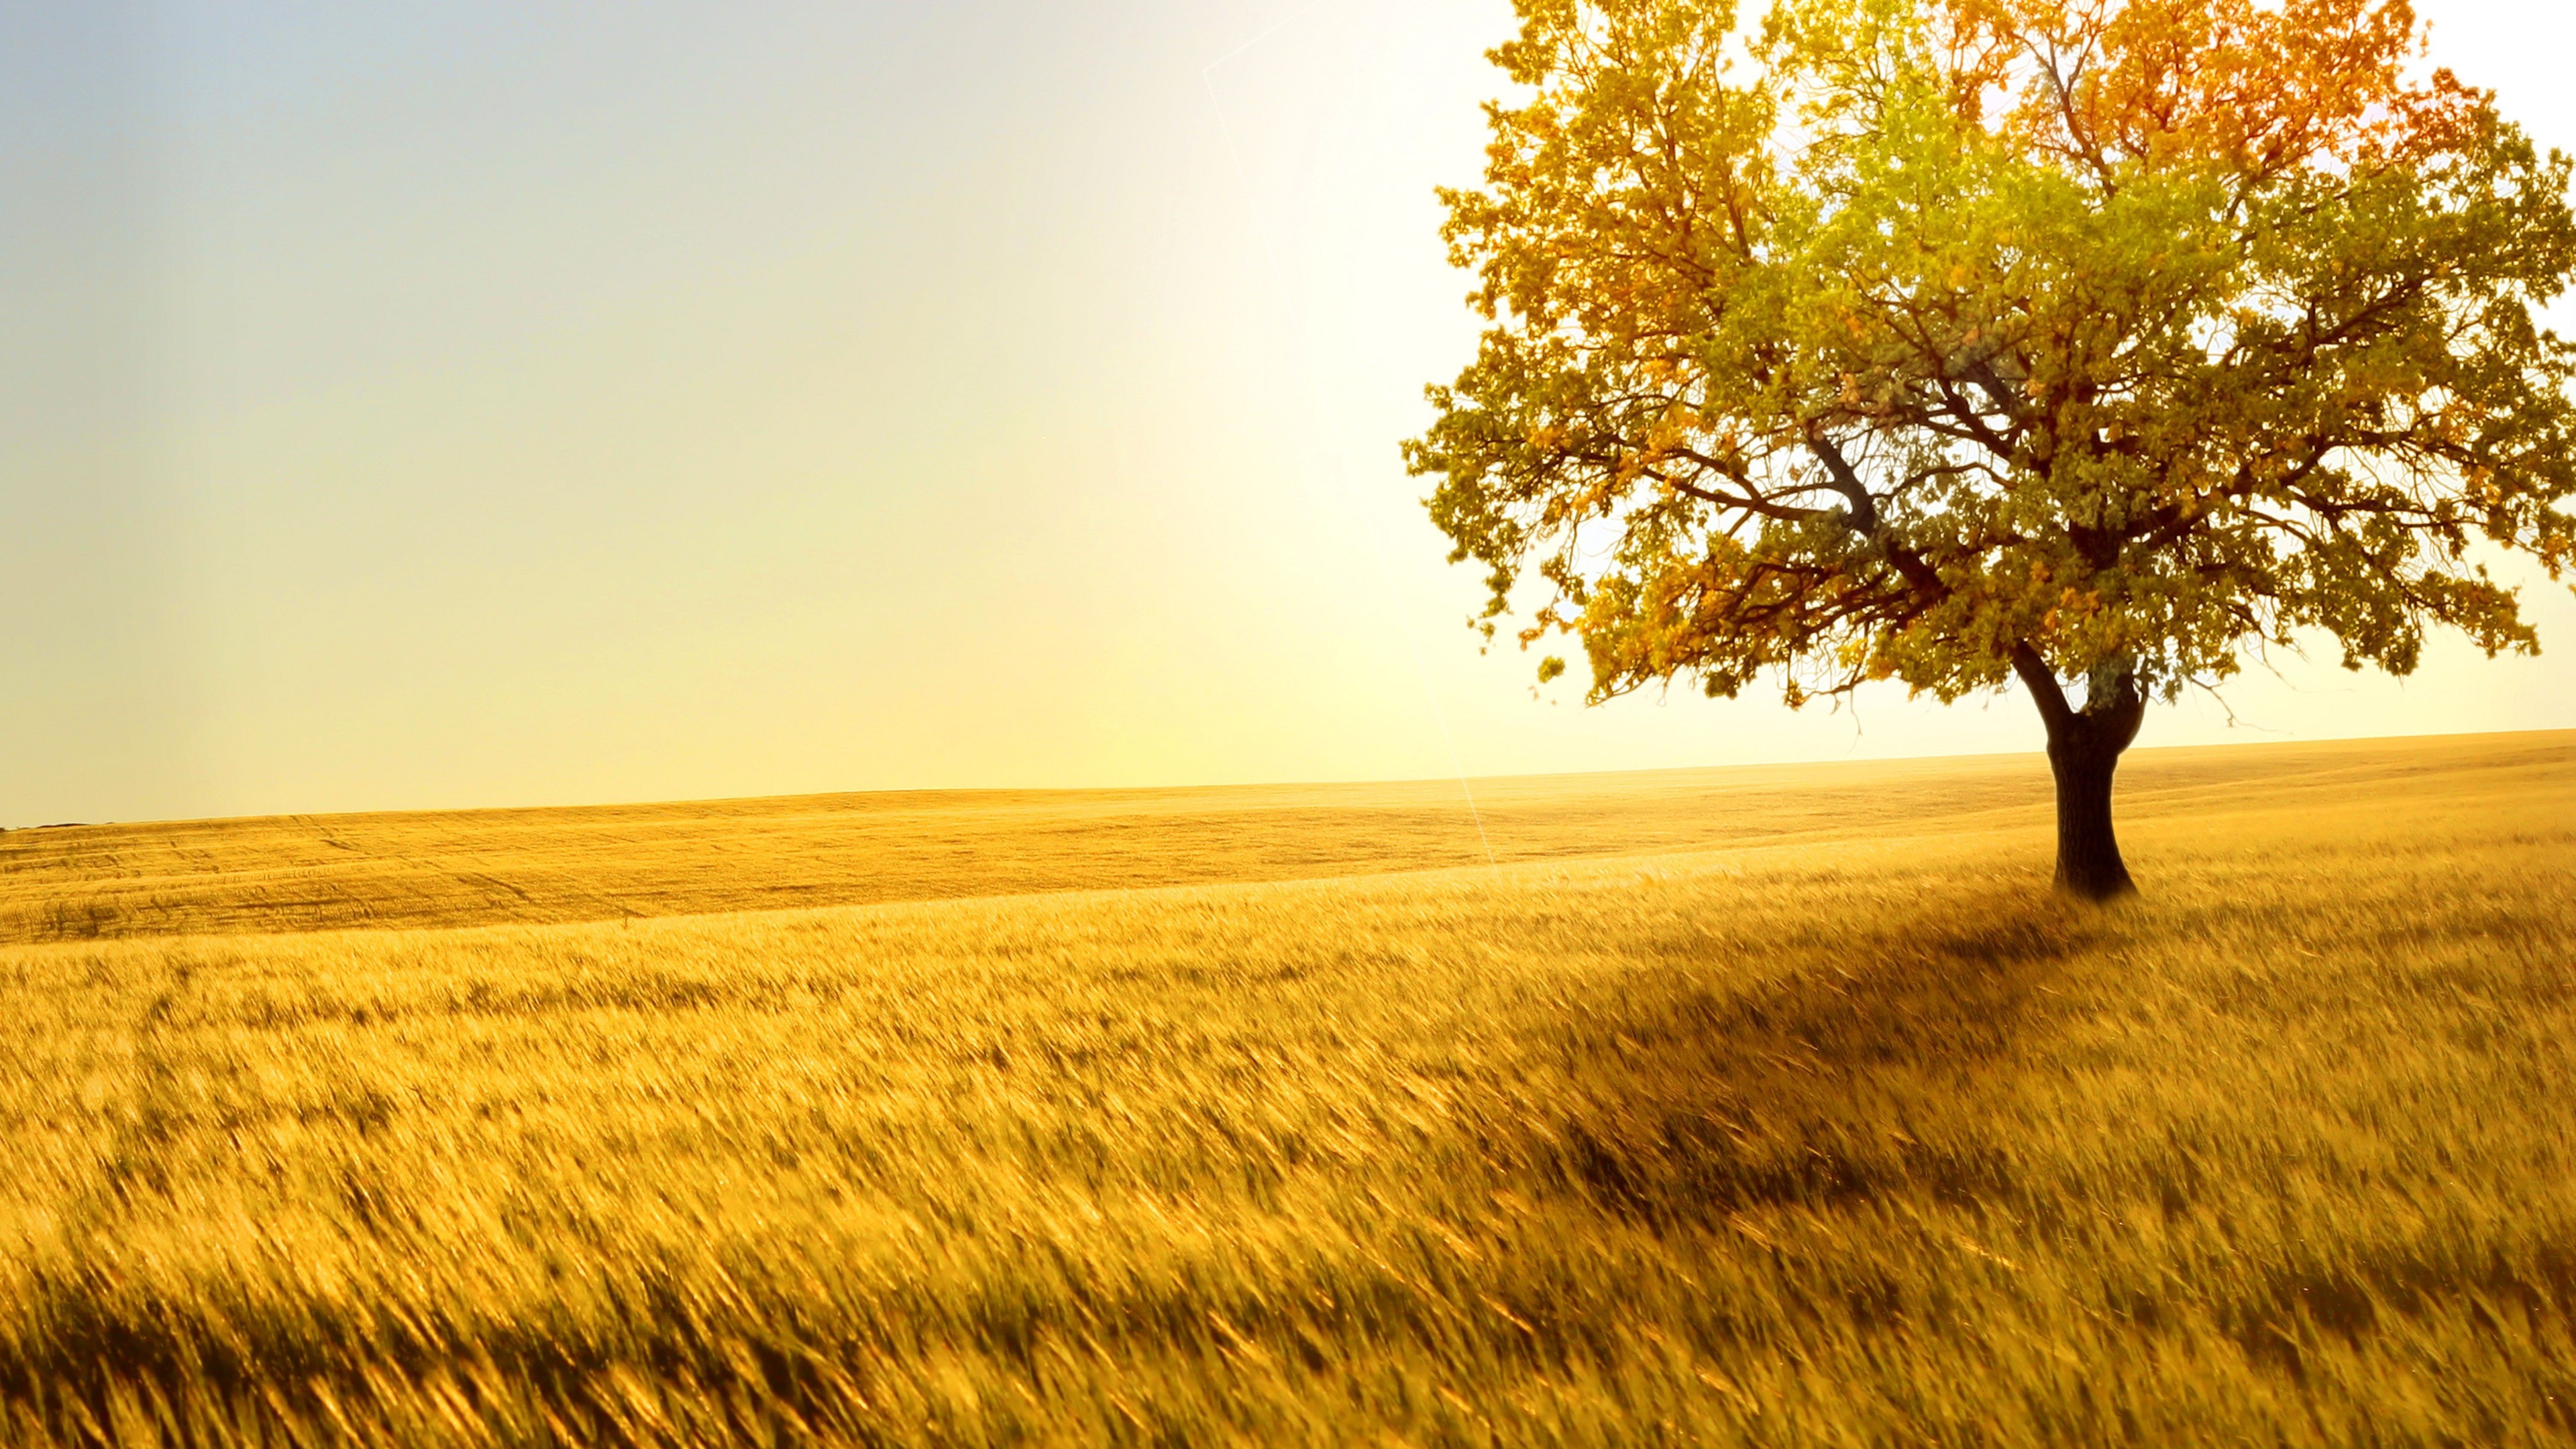 yellow tree in yellow field 4k 1540141102 - Yellow Tree In Yellow Field 4k - trees wallpapers, photography wallpapers, nature wallpapers, landscape wallpapers, hd-wallpapers, field wallpapers, 5k wallpapers, 4k-wallpapers